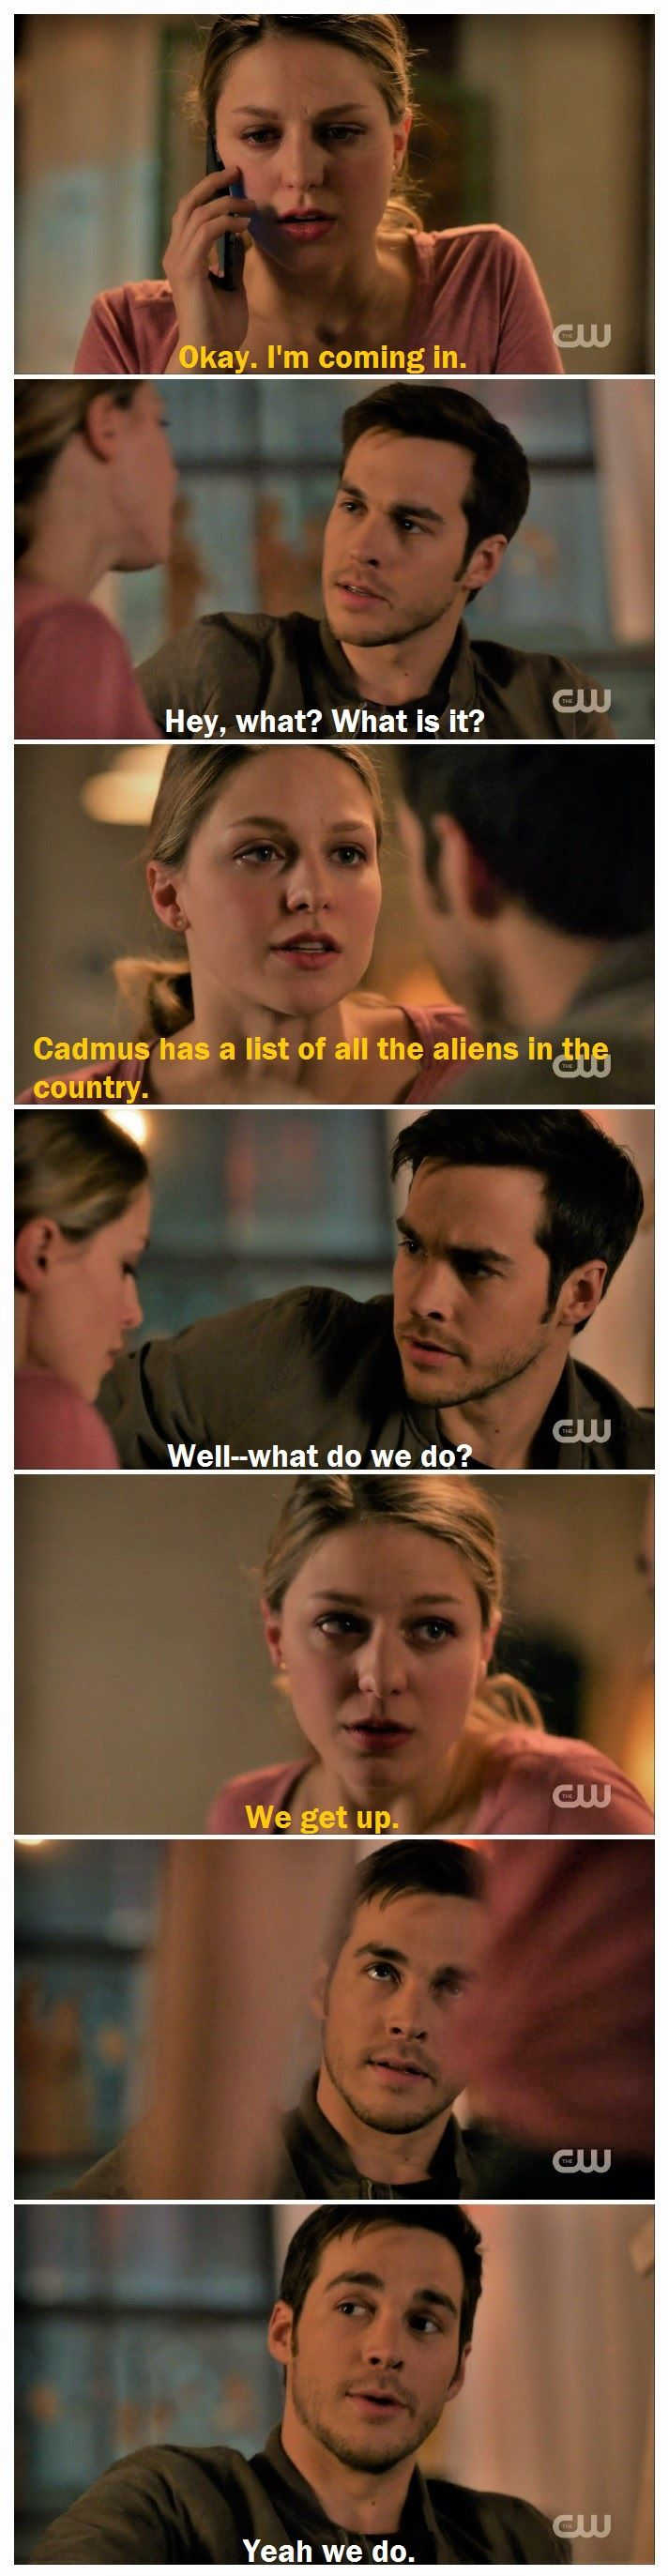 """The kissing and cuddling was cute, but this is why I <3 Kara and Mon-El together so much. Teamwork is my favorite, and Mon-El matches Kara in a way no one else can (strength, stubbornness, heart, etc.). I'm a sucker for fighting-side-by-side couples, and these two just keep getting better and better. 